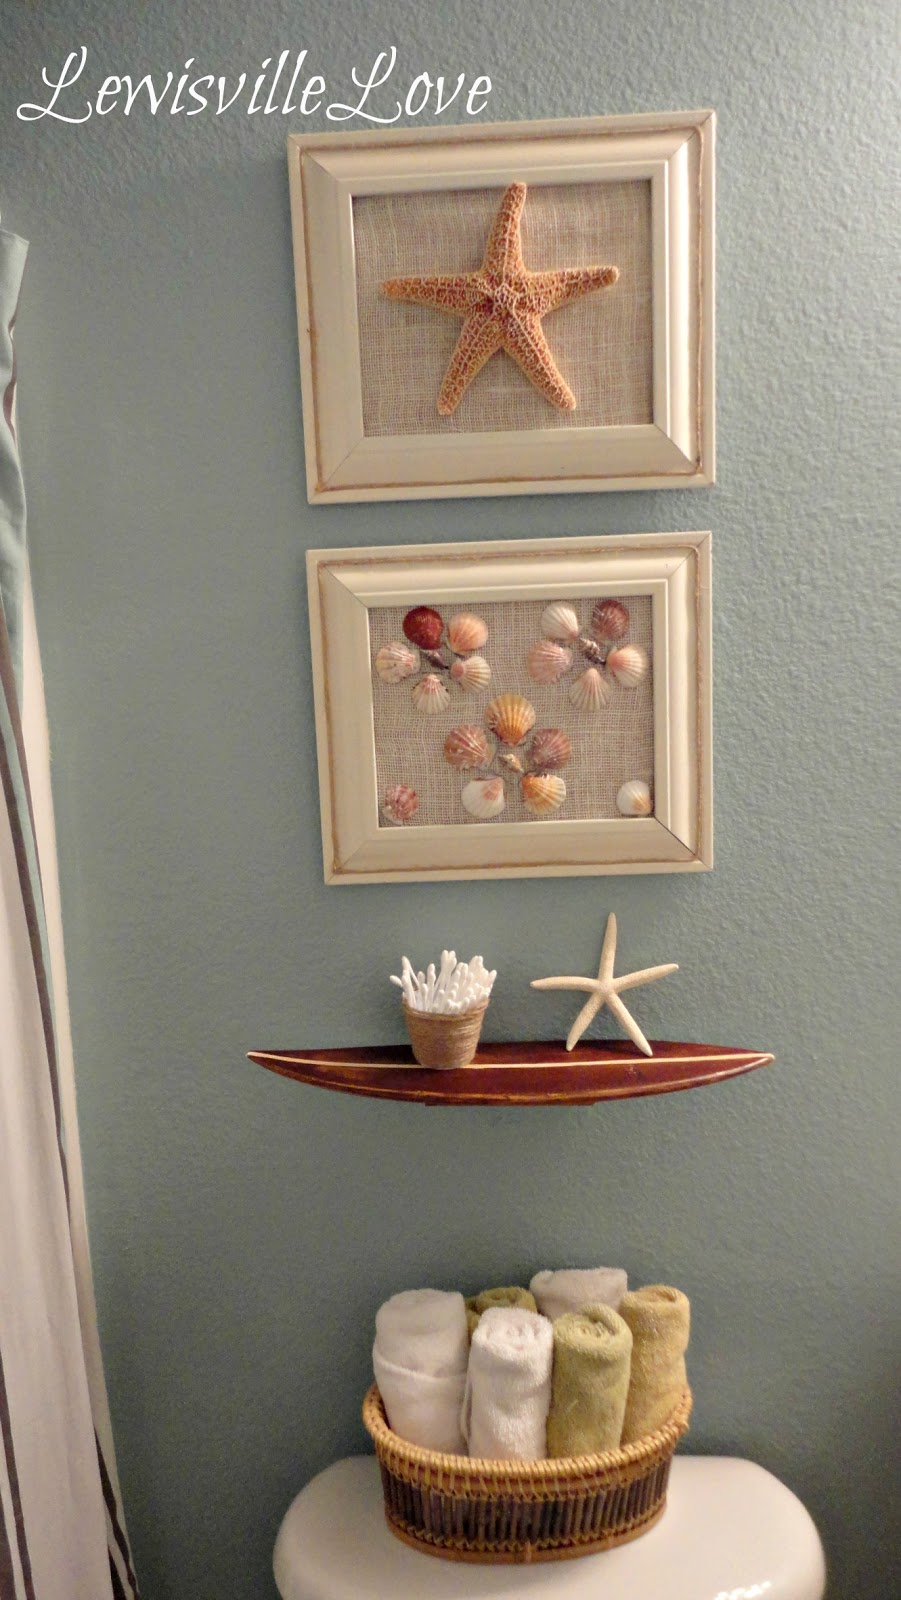 Best Lewisville Love Beach Theme Bathroom Reveal This Month